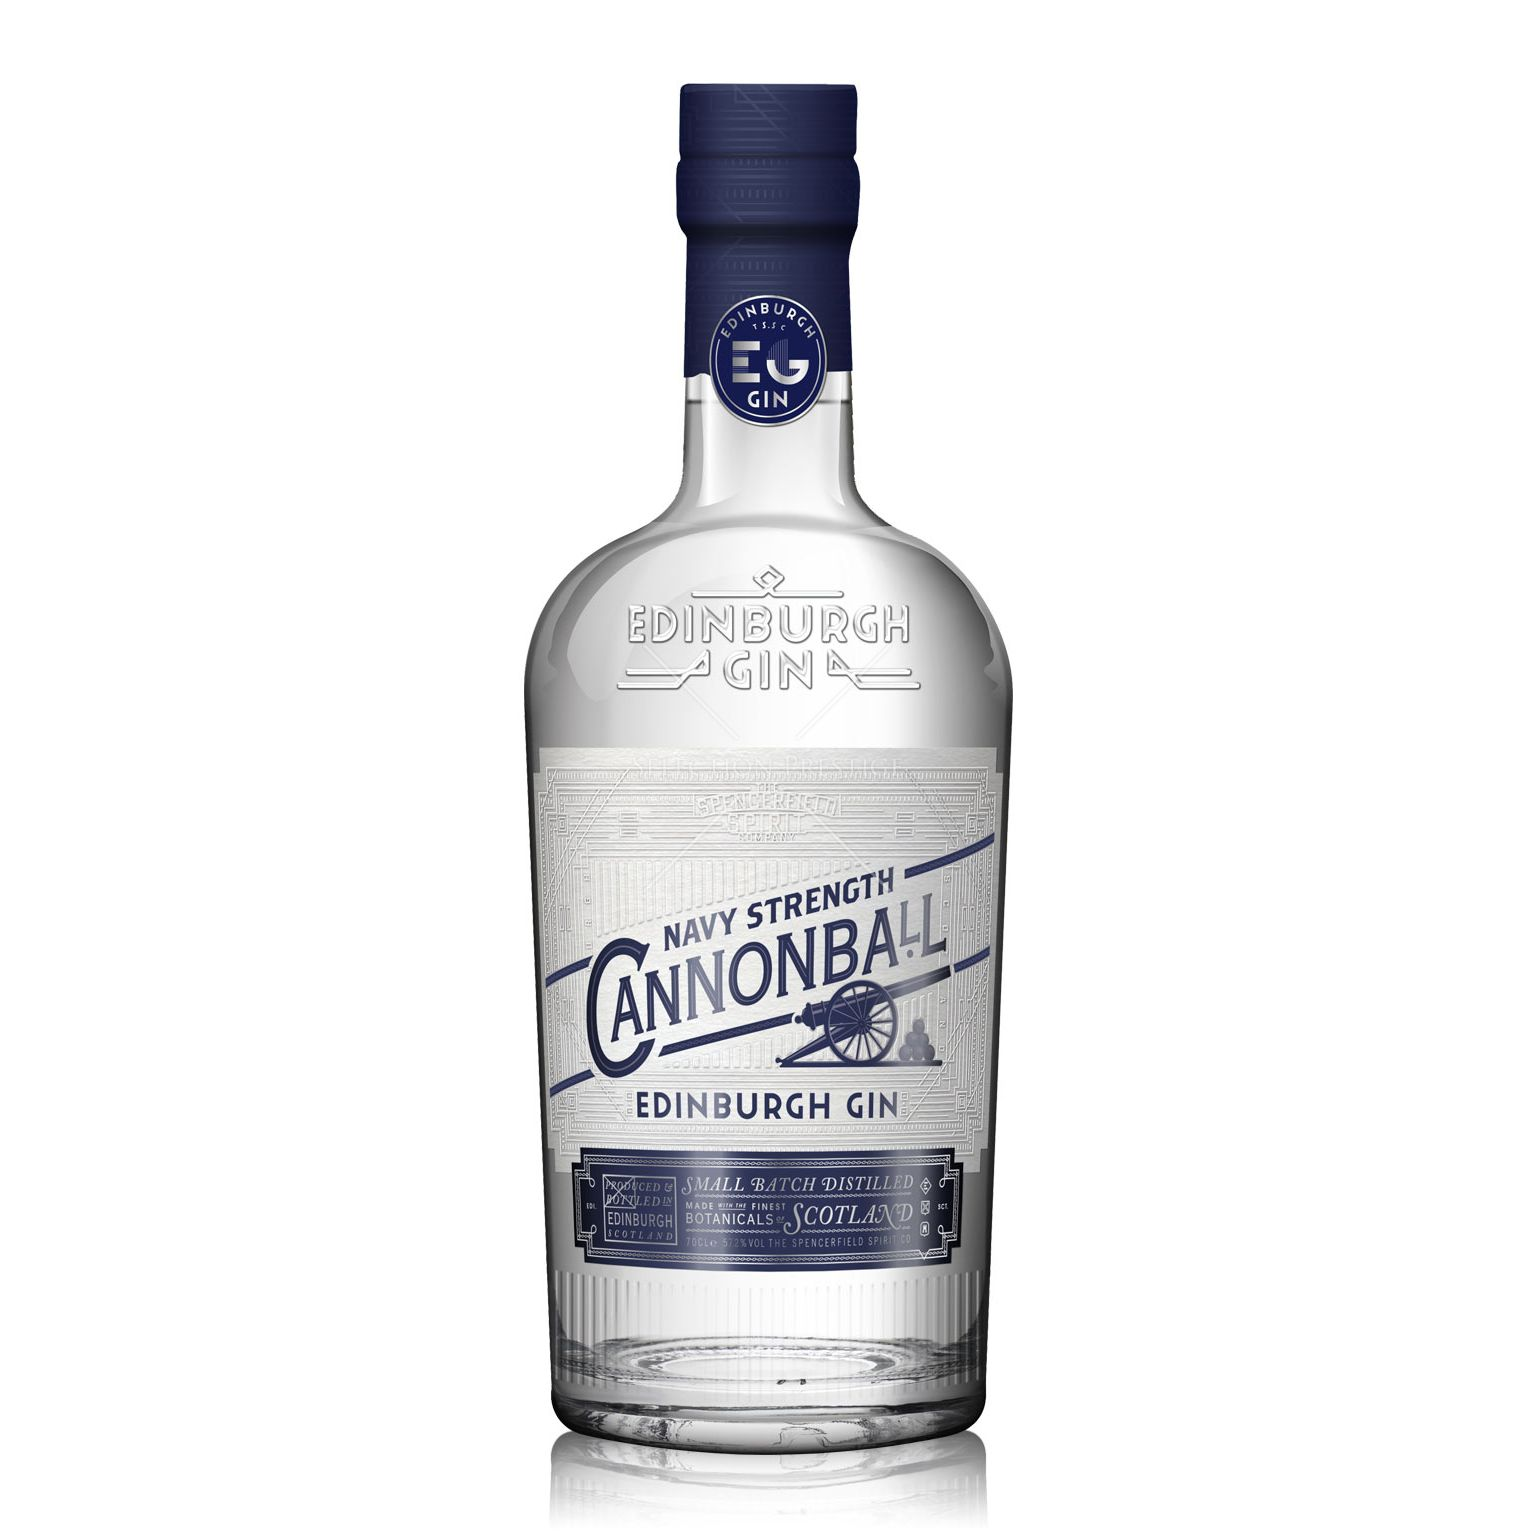 Edinburgh Gin Cannonball 70cl, Food, Beverages & Tobacco by The Drink Market